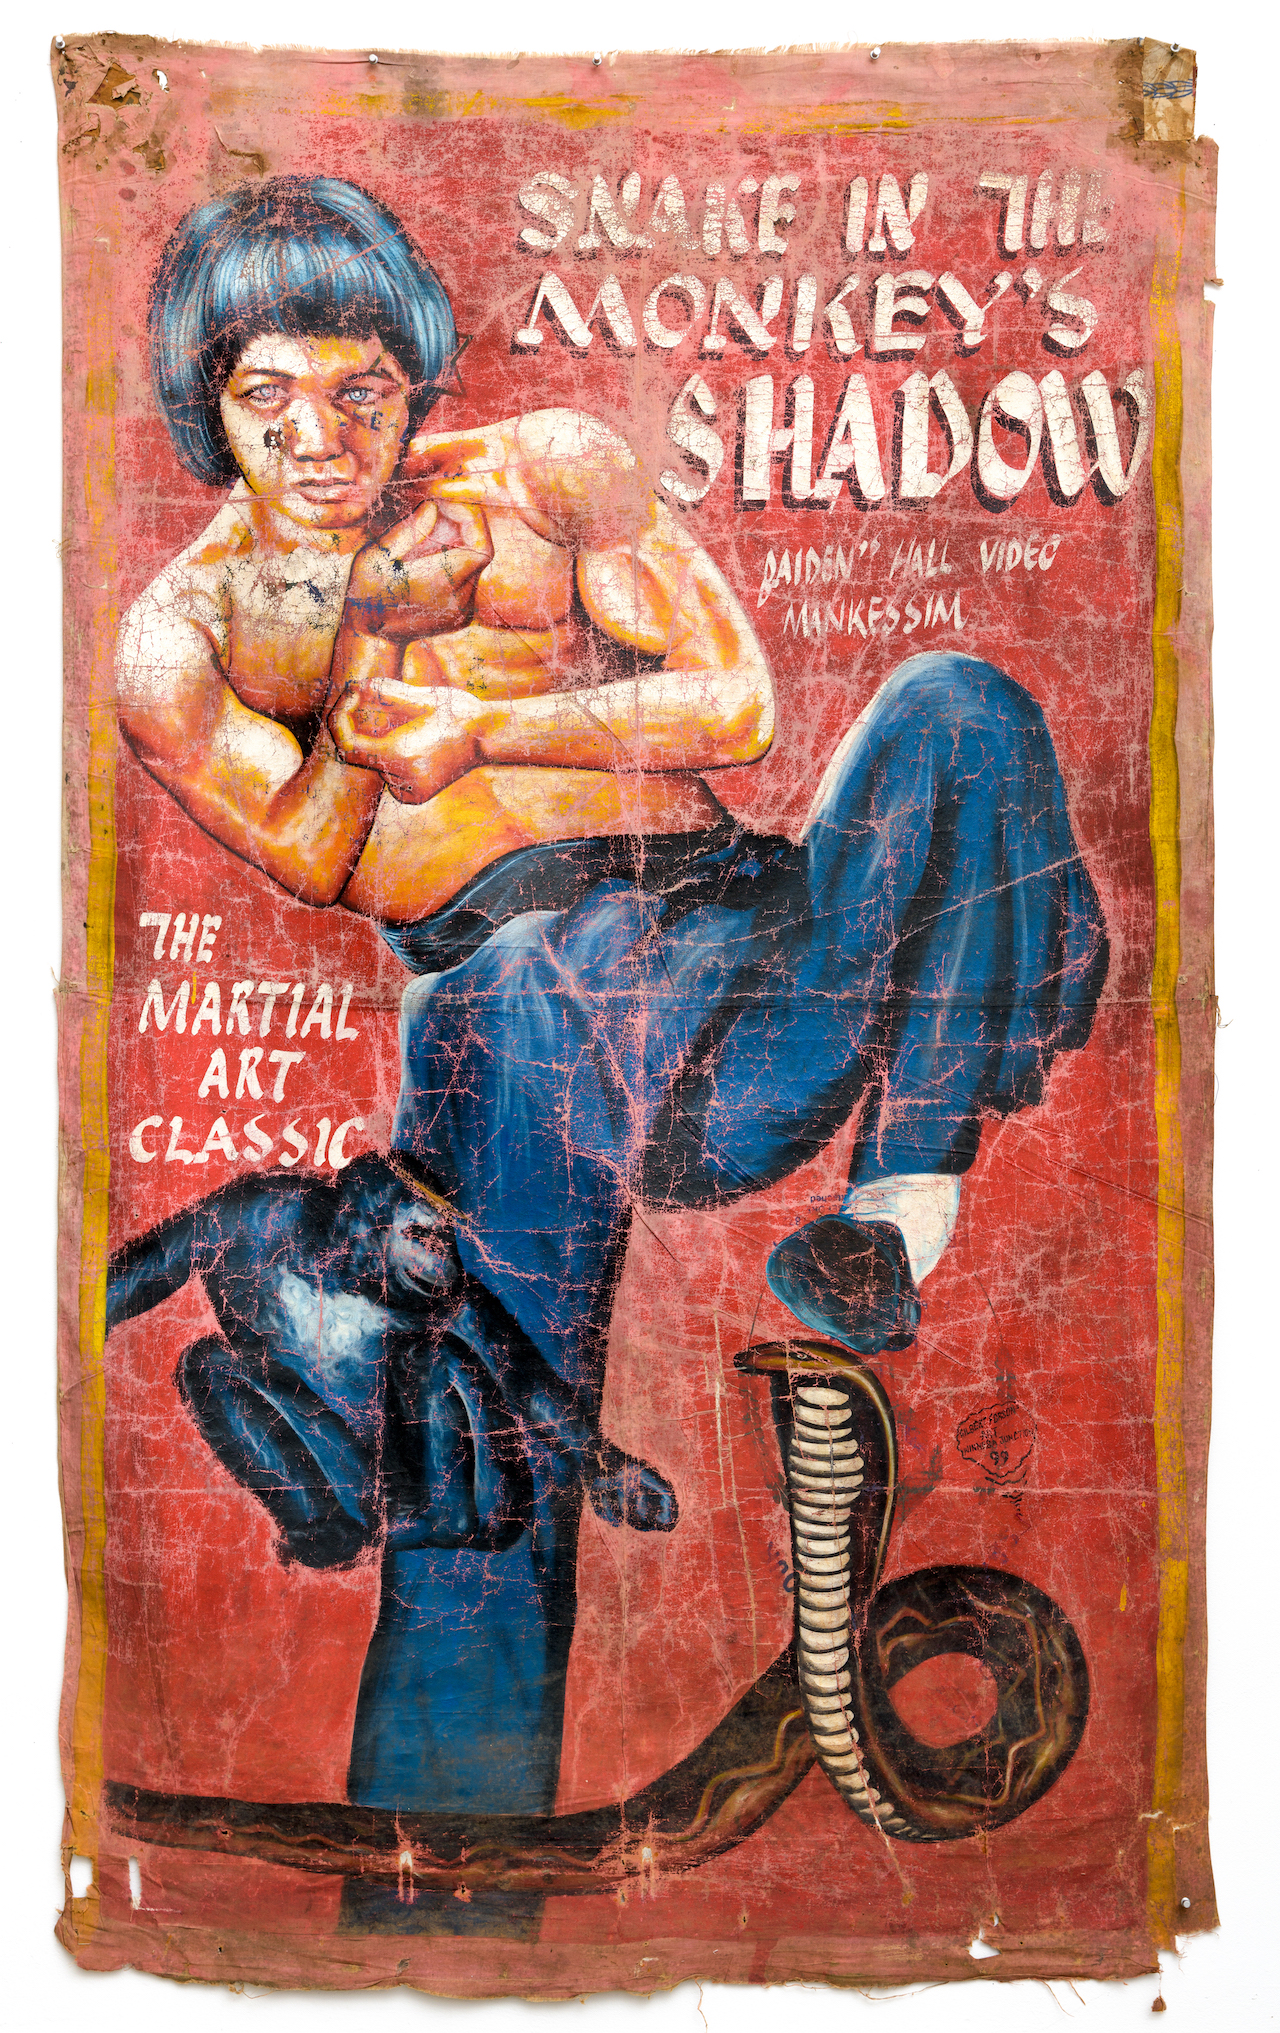 20. Gilbert Forson_Snake in the Monkey's Shadow